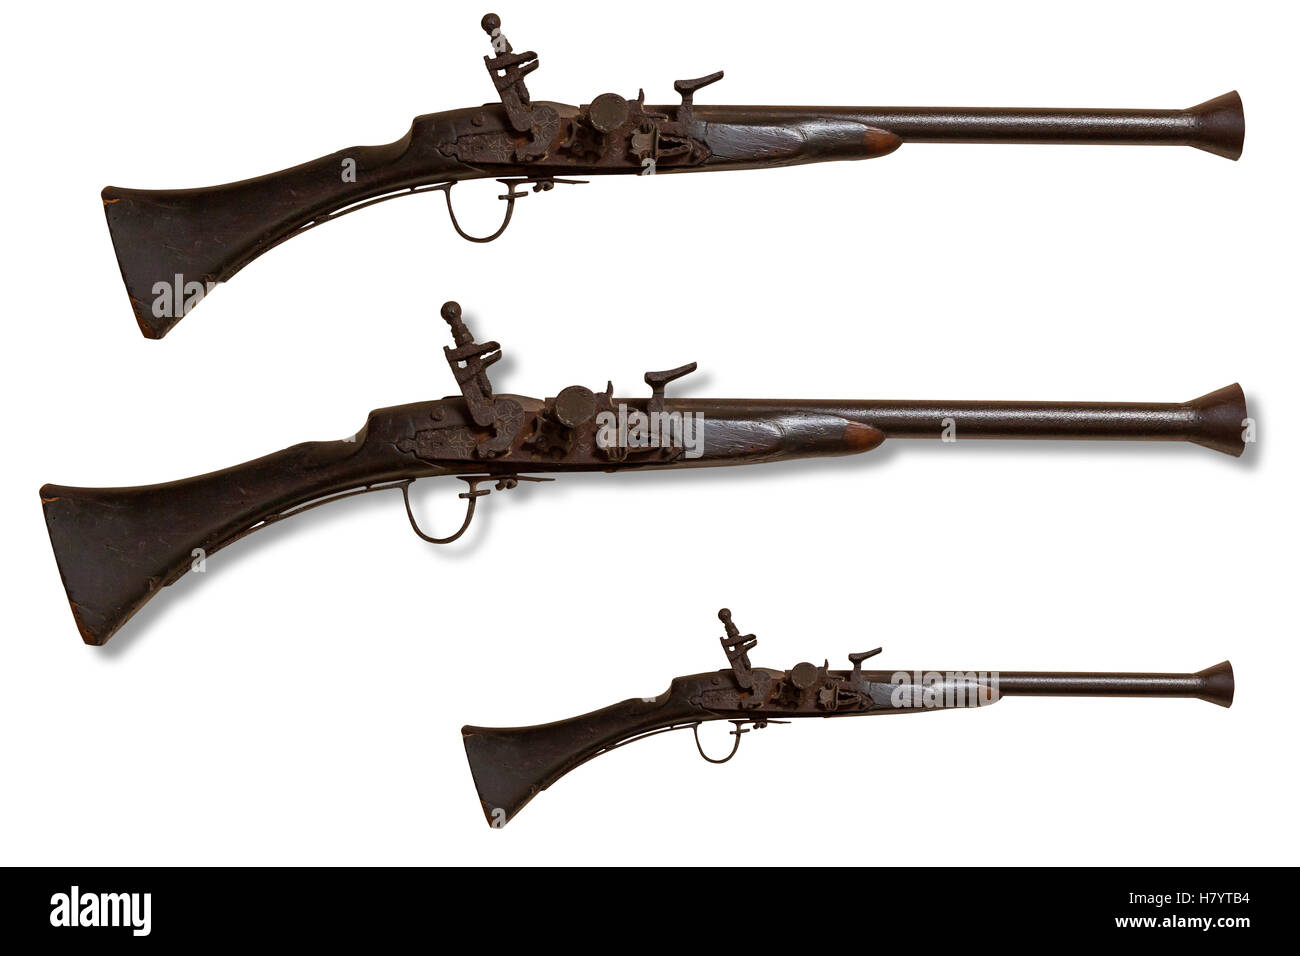 Hunting gun. Close up photo of isolated antique hunting gun on a white background. - Stock Image